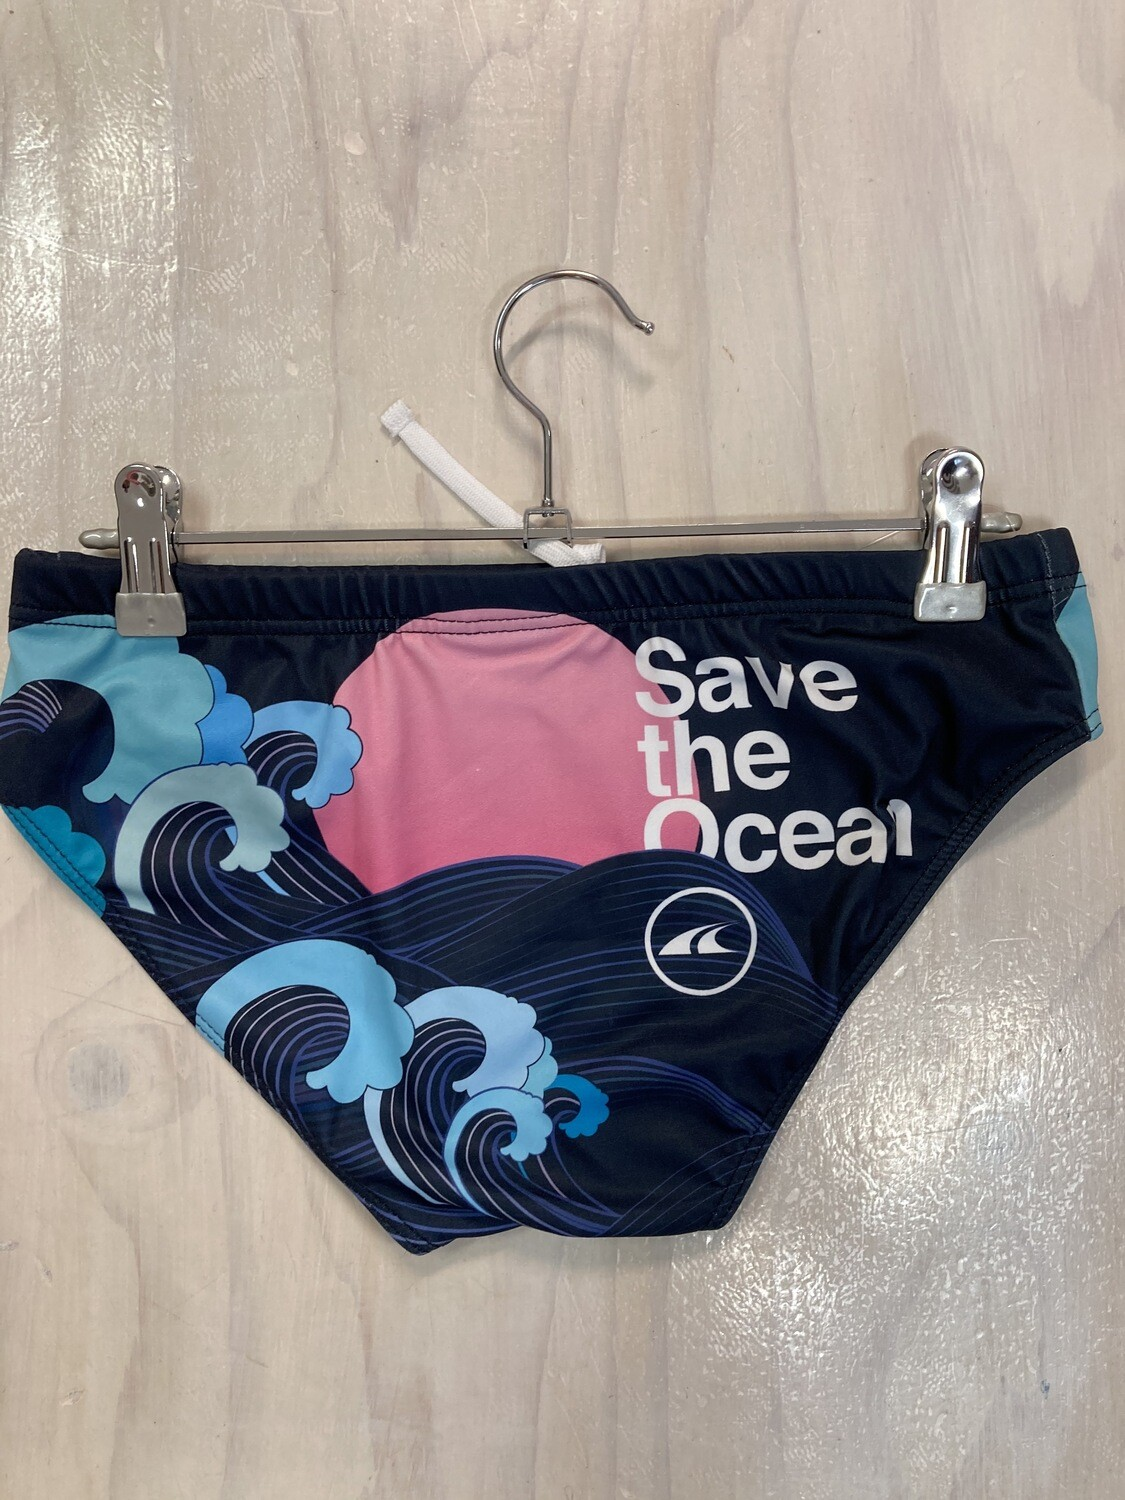 Costume Akron Save the ocean 2